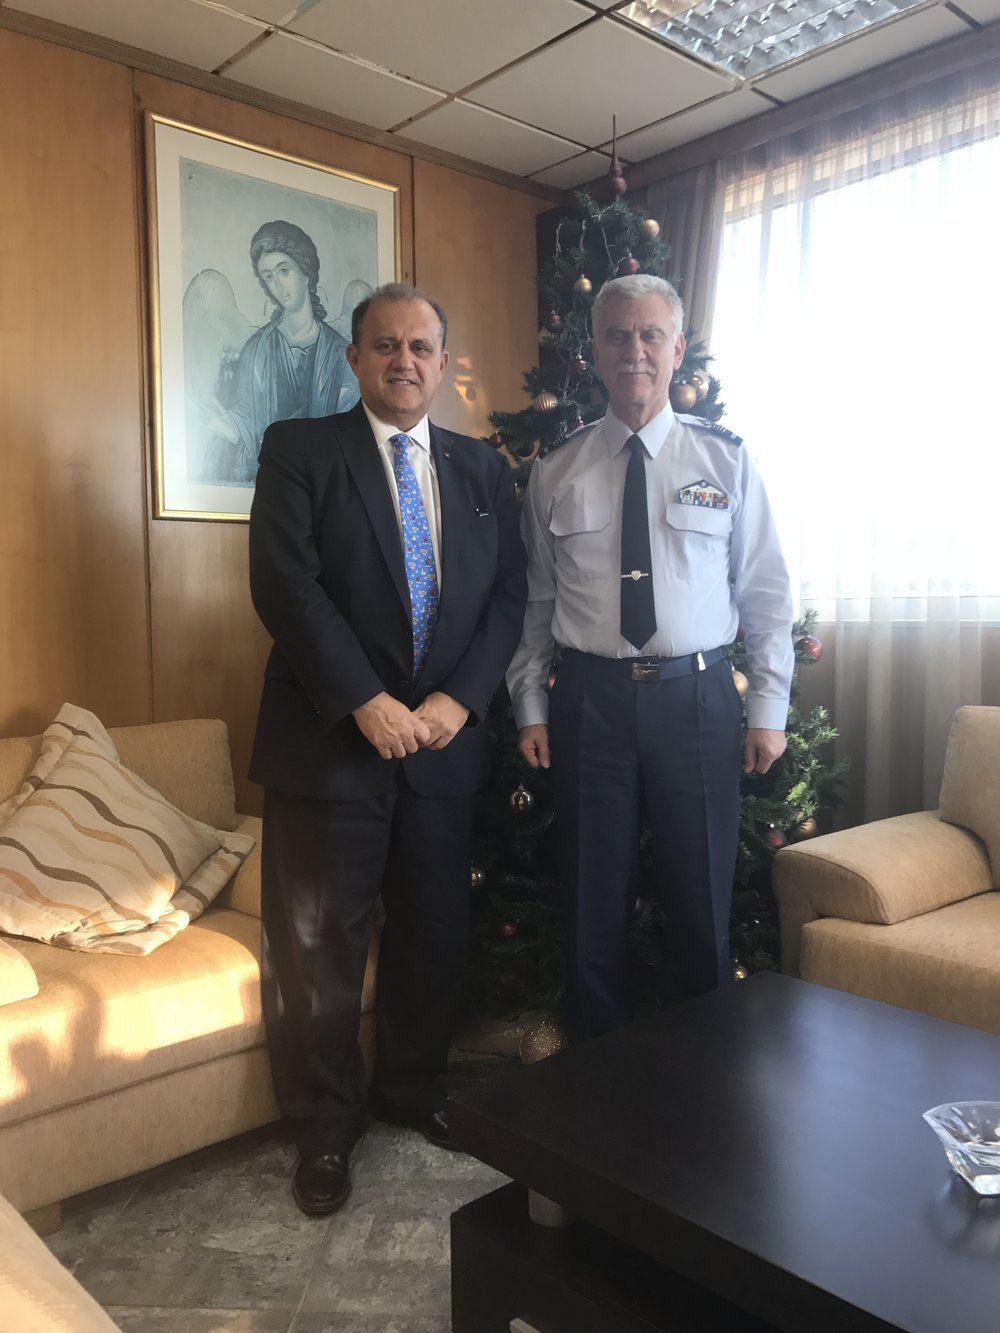 President Larigakis With Lt. Gen. Christos Christodoulou, chief, Hellenic Air Force General Staff